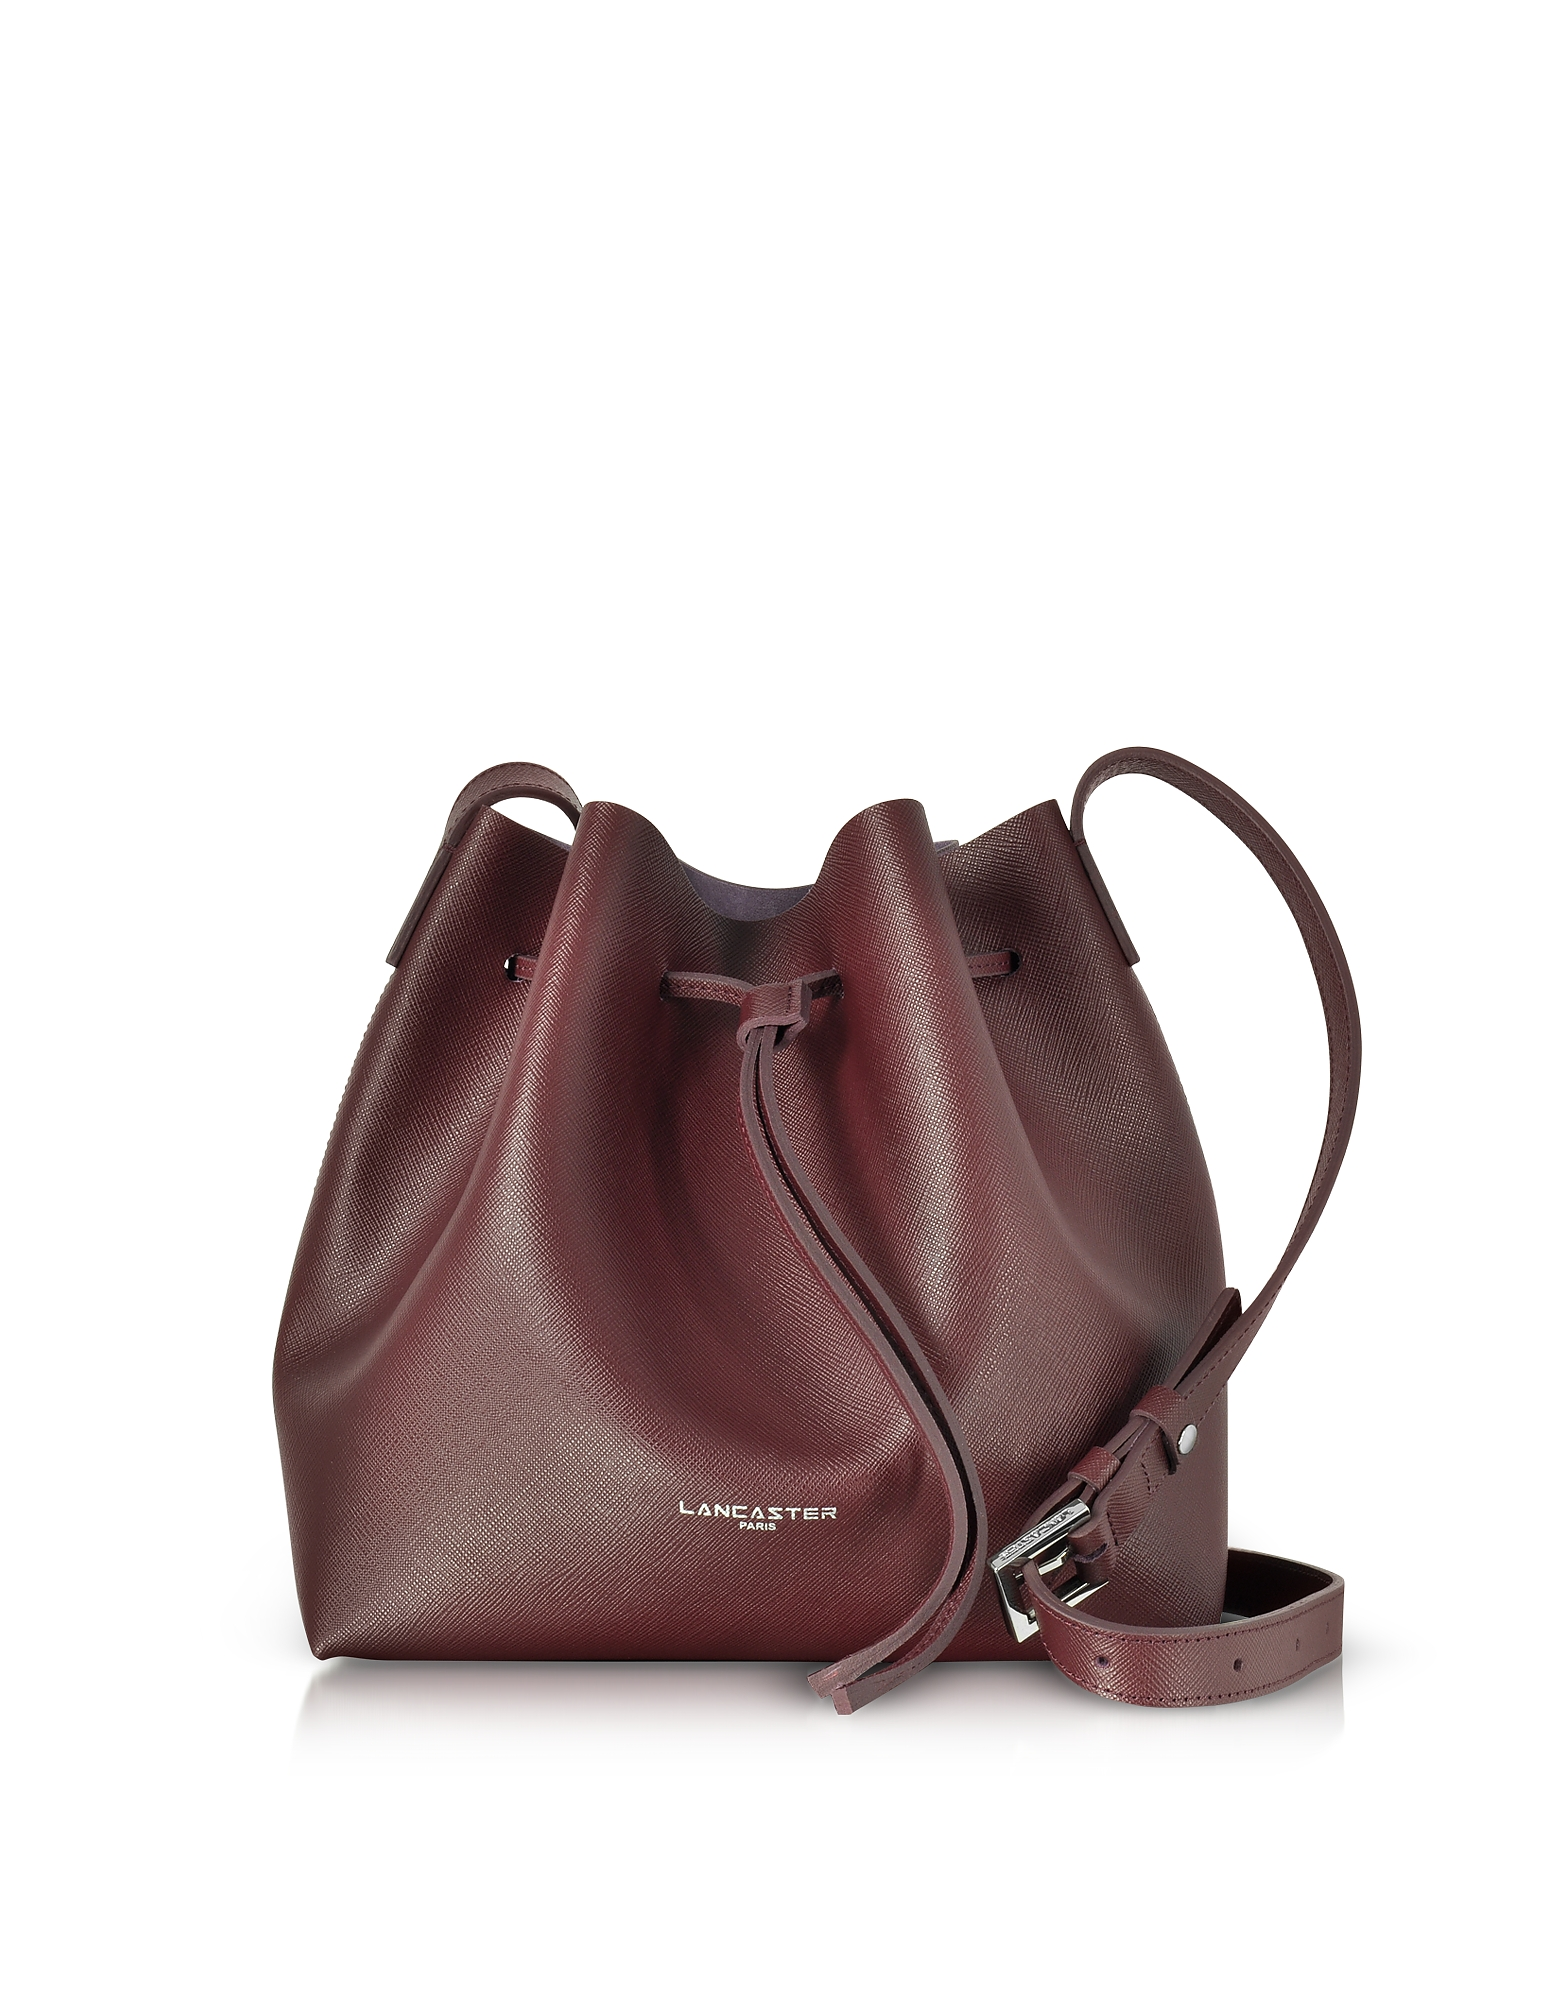 Lancaster Paris Handbags, Pur & Element Burgundy Saffiano Leather Bucket Bag